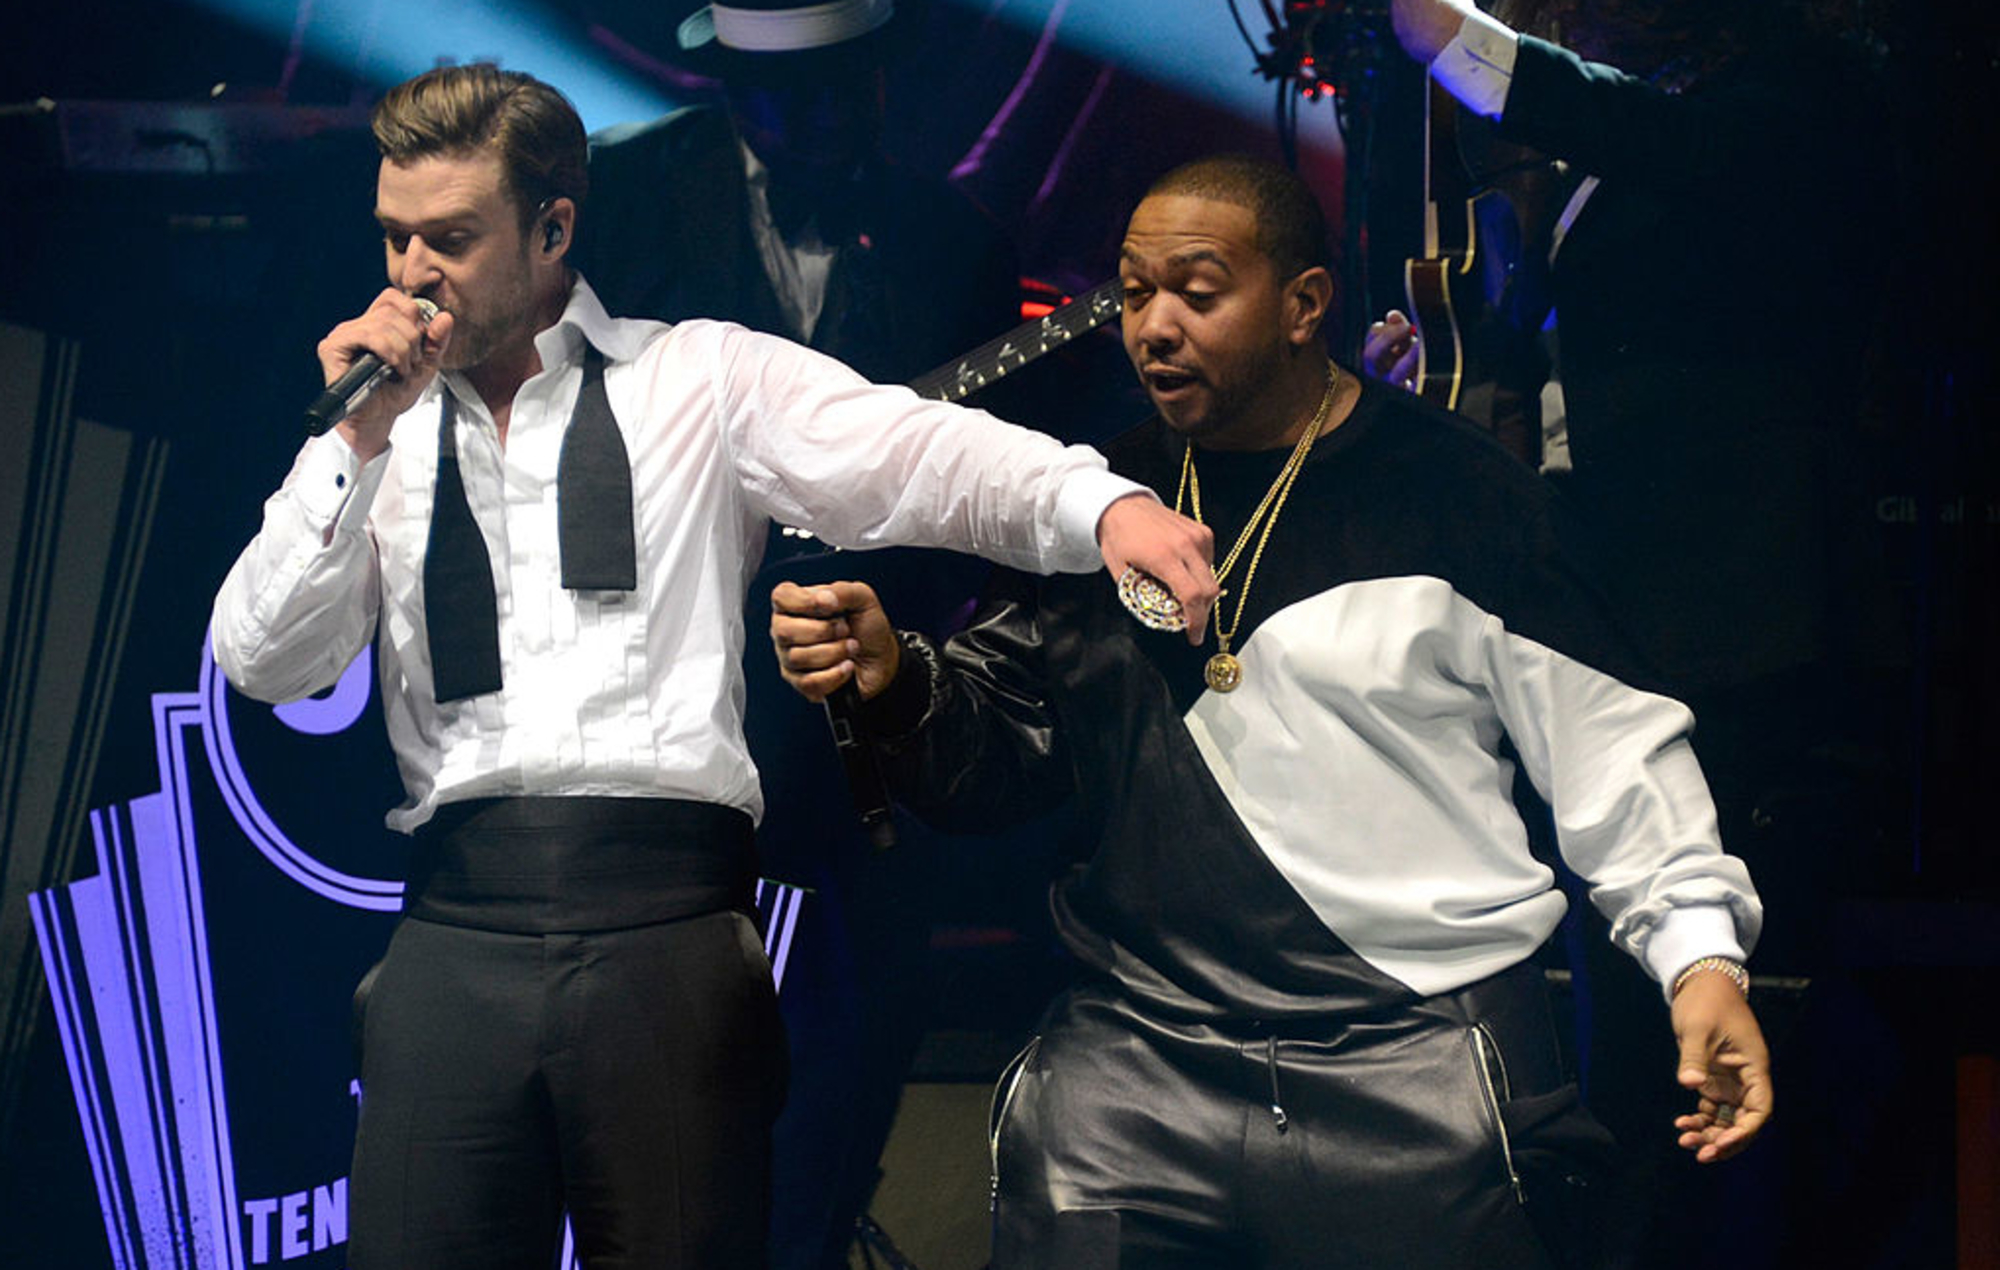 Timbaland teases 'FutureSex/LoveSounds' sequel with Justin Timberlake